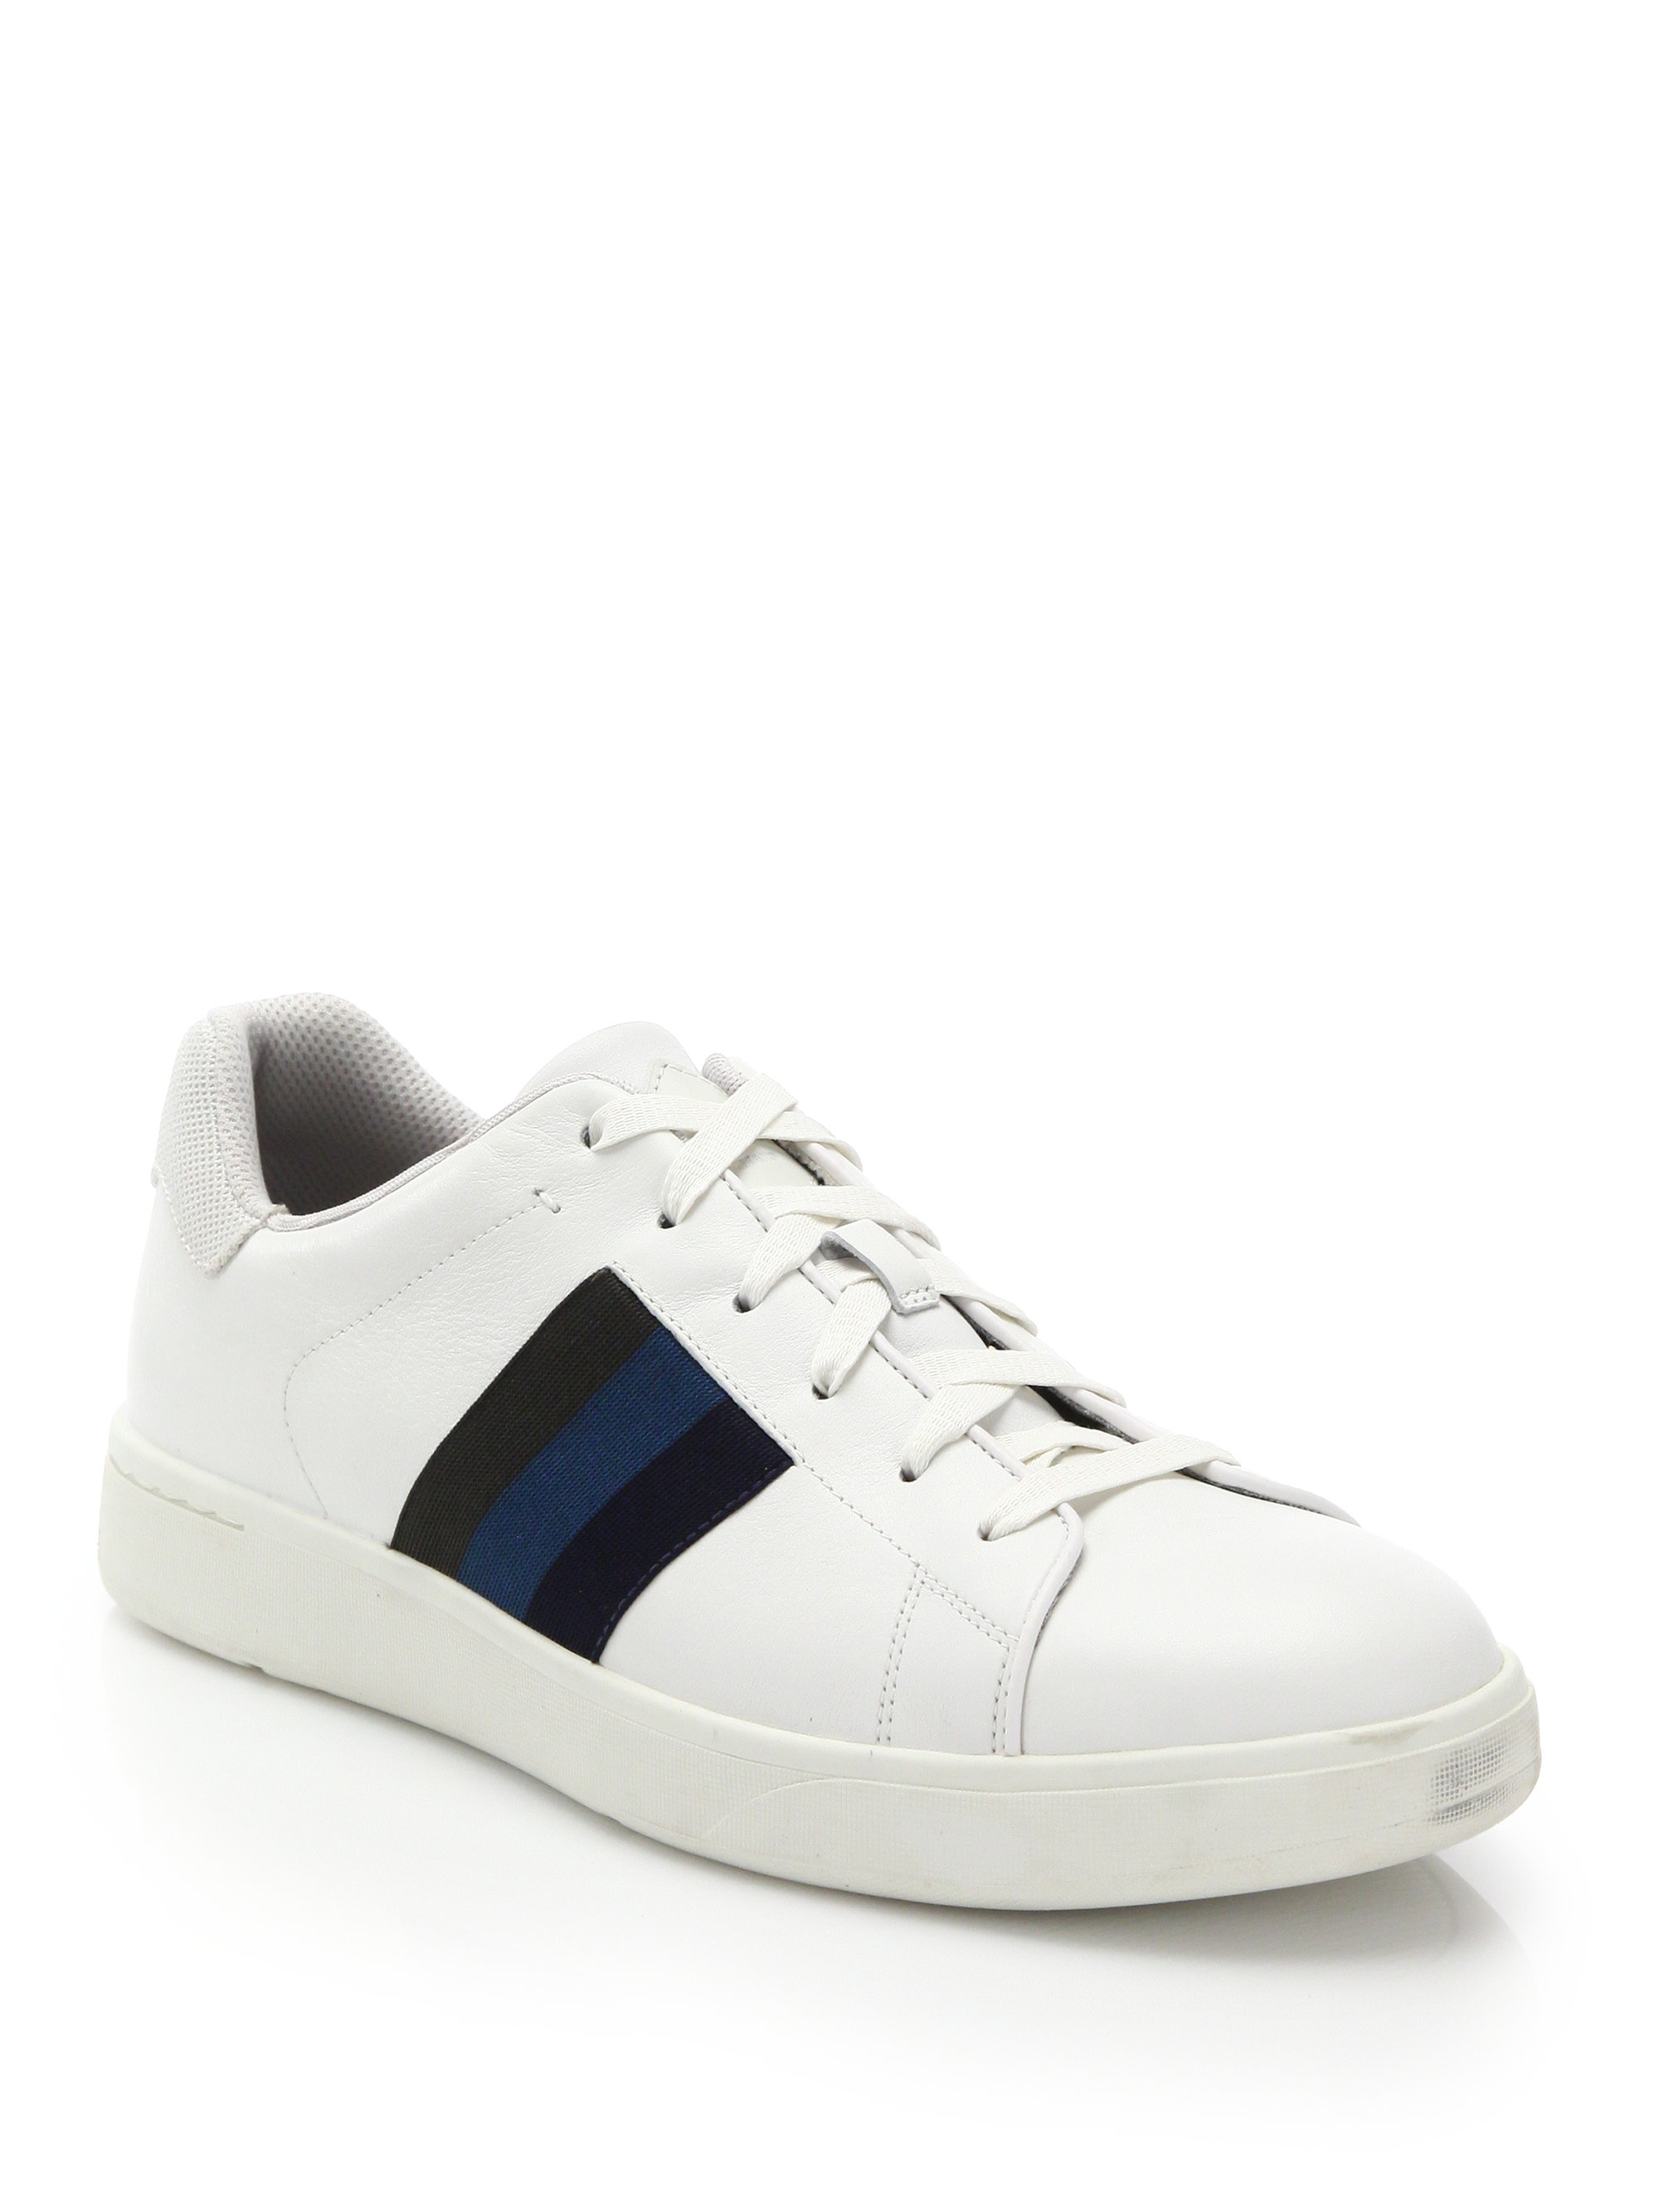 Paul Smith Panelled low top sneakers